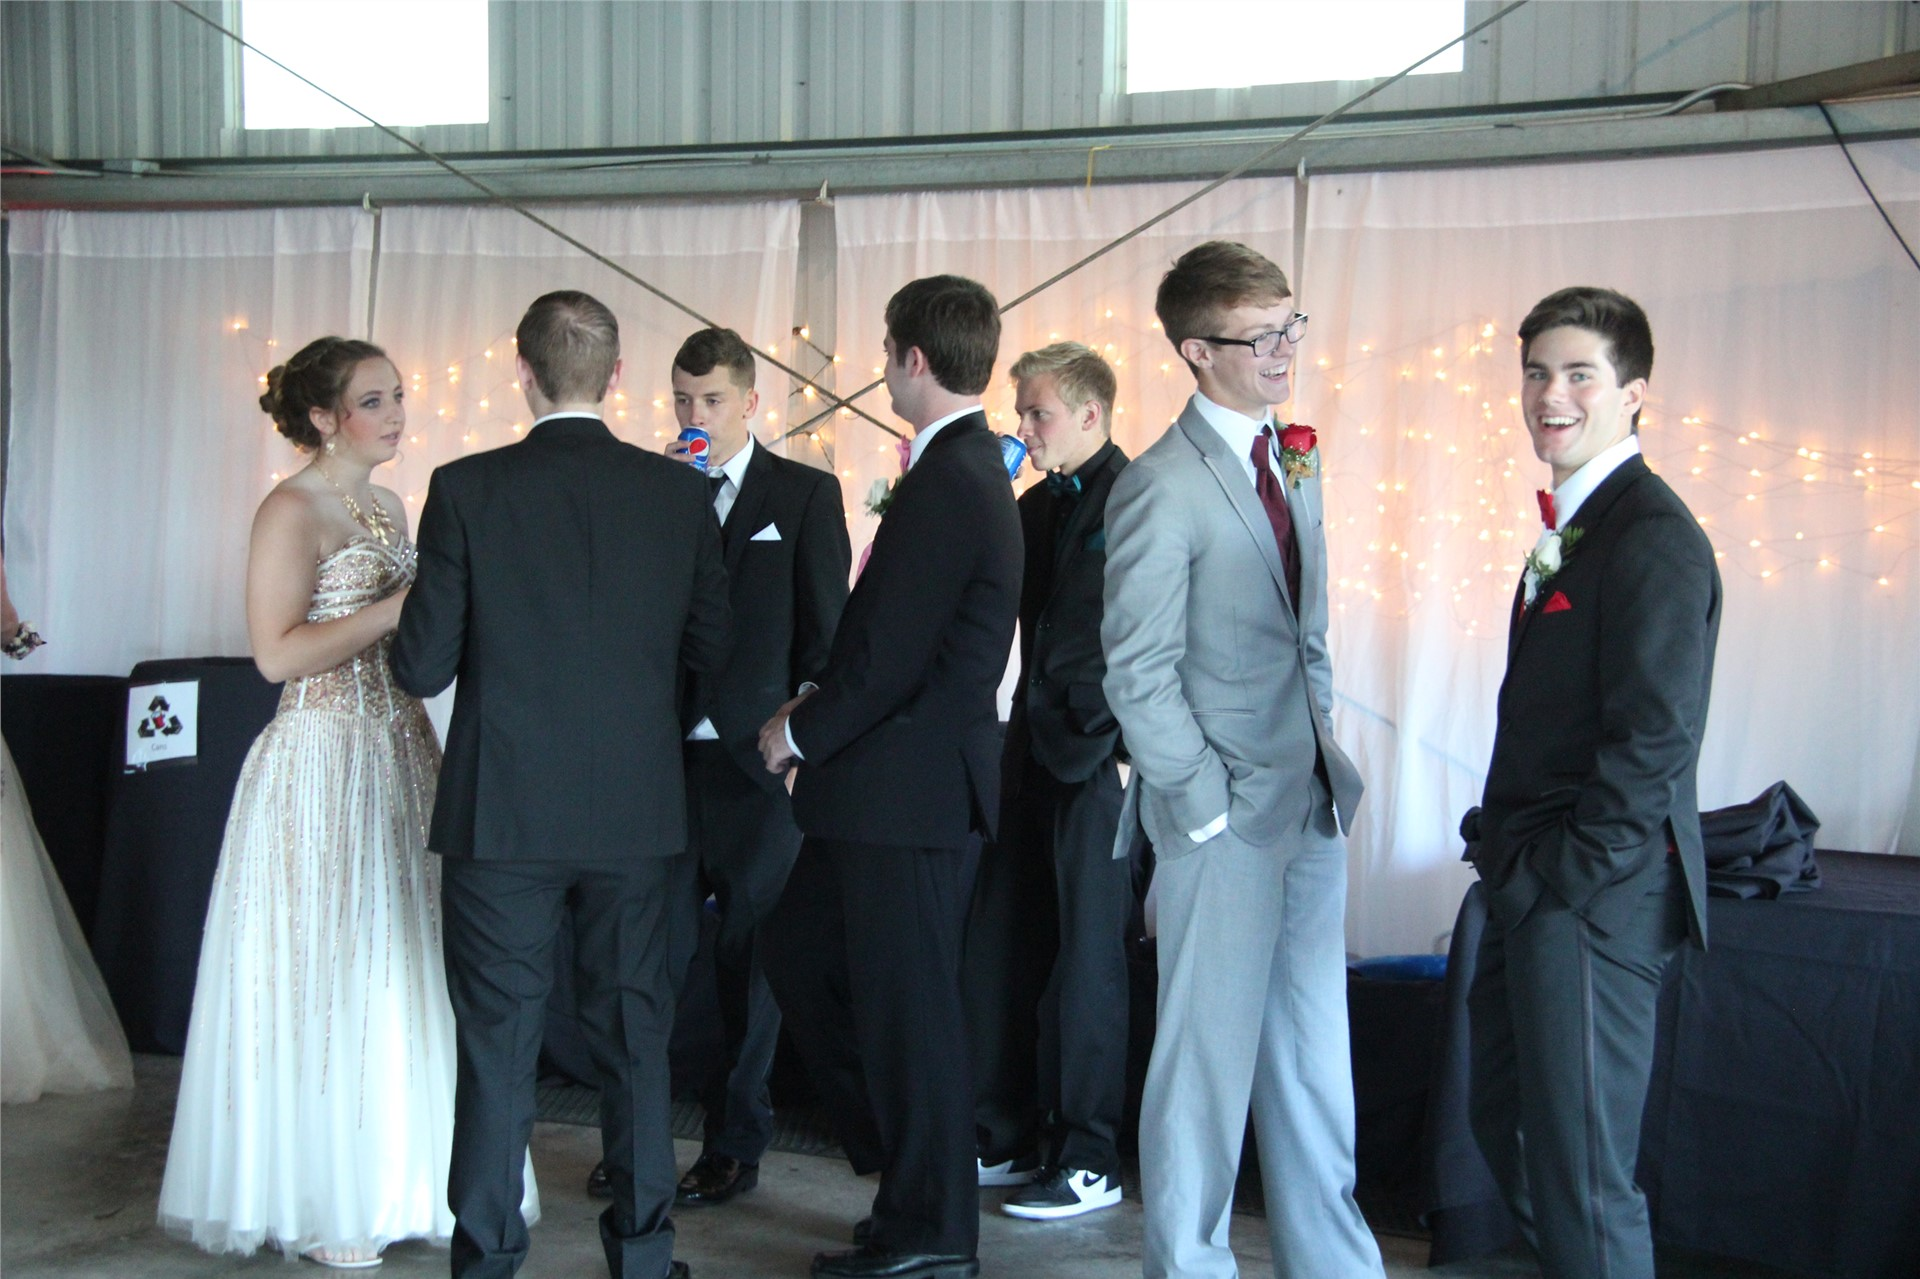 group of students socialize inside prom venue